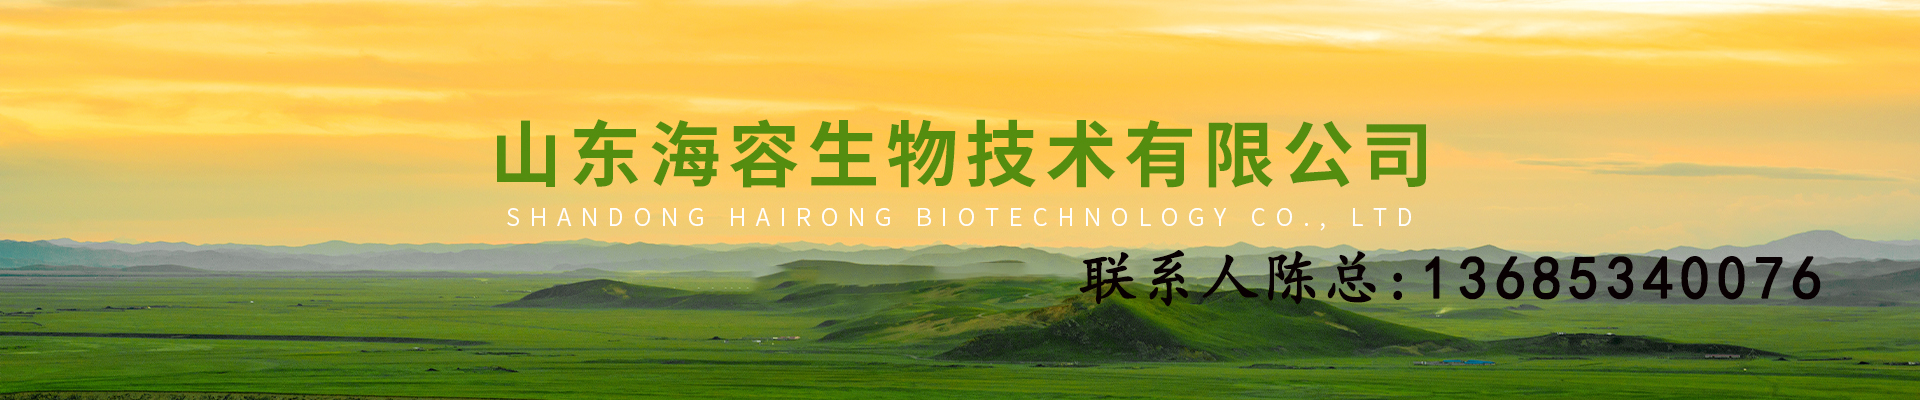 http://www.sdhairongbiotech.com/data/upload/202102/20210201101204_702.jpg